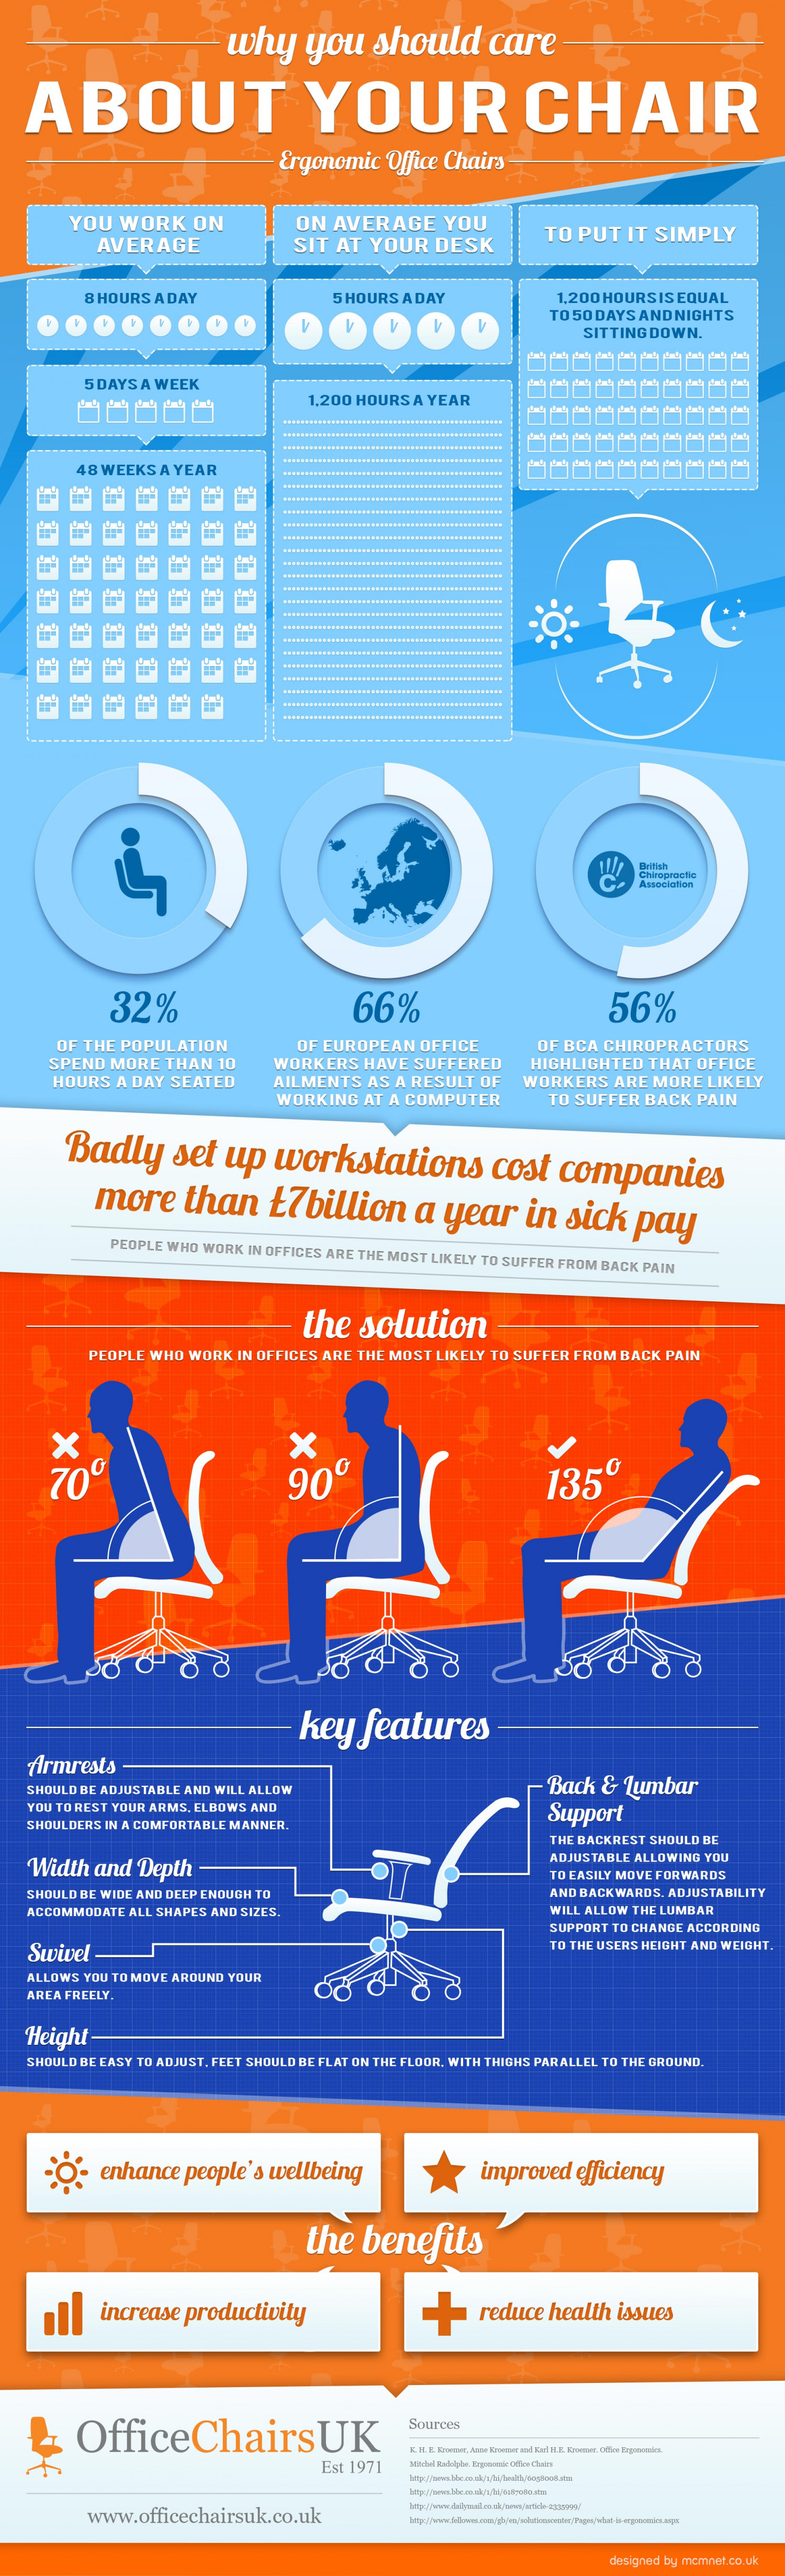 Why You Should Care About Your Chair Infographic